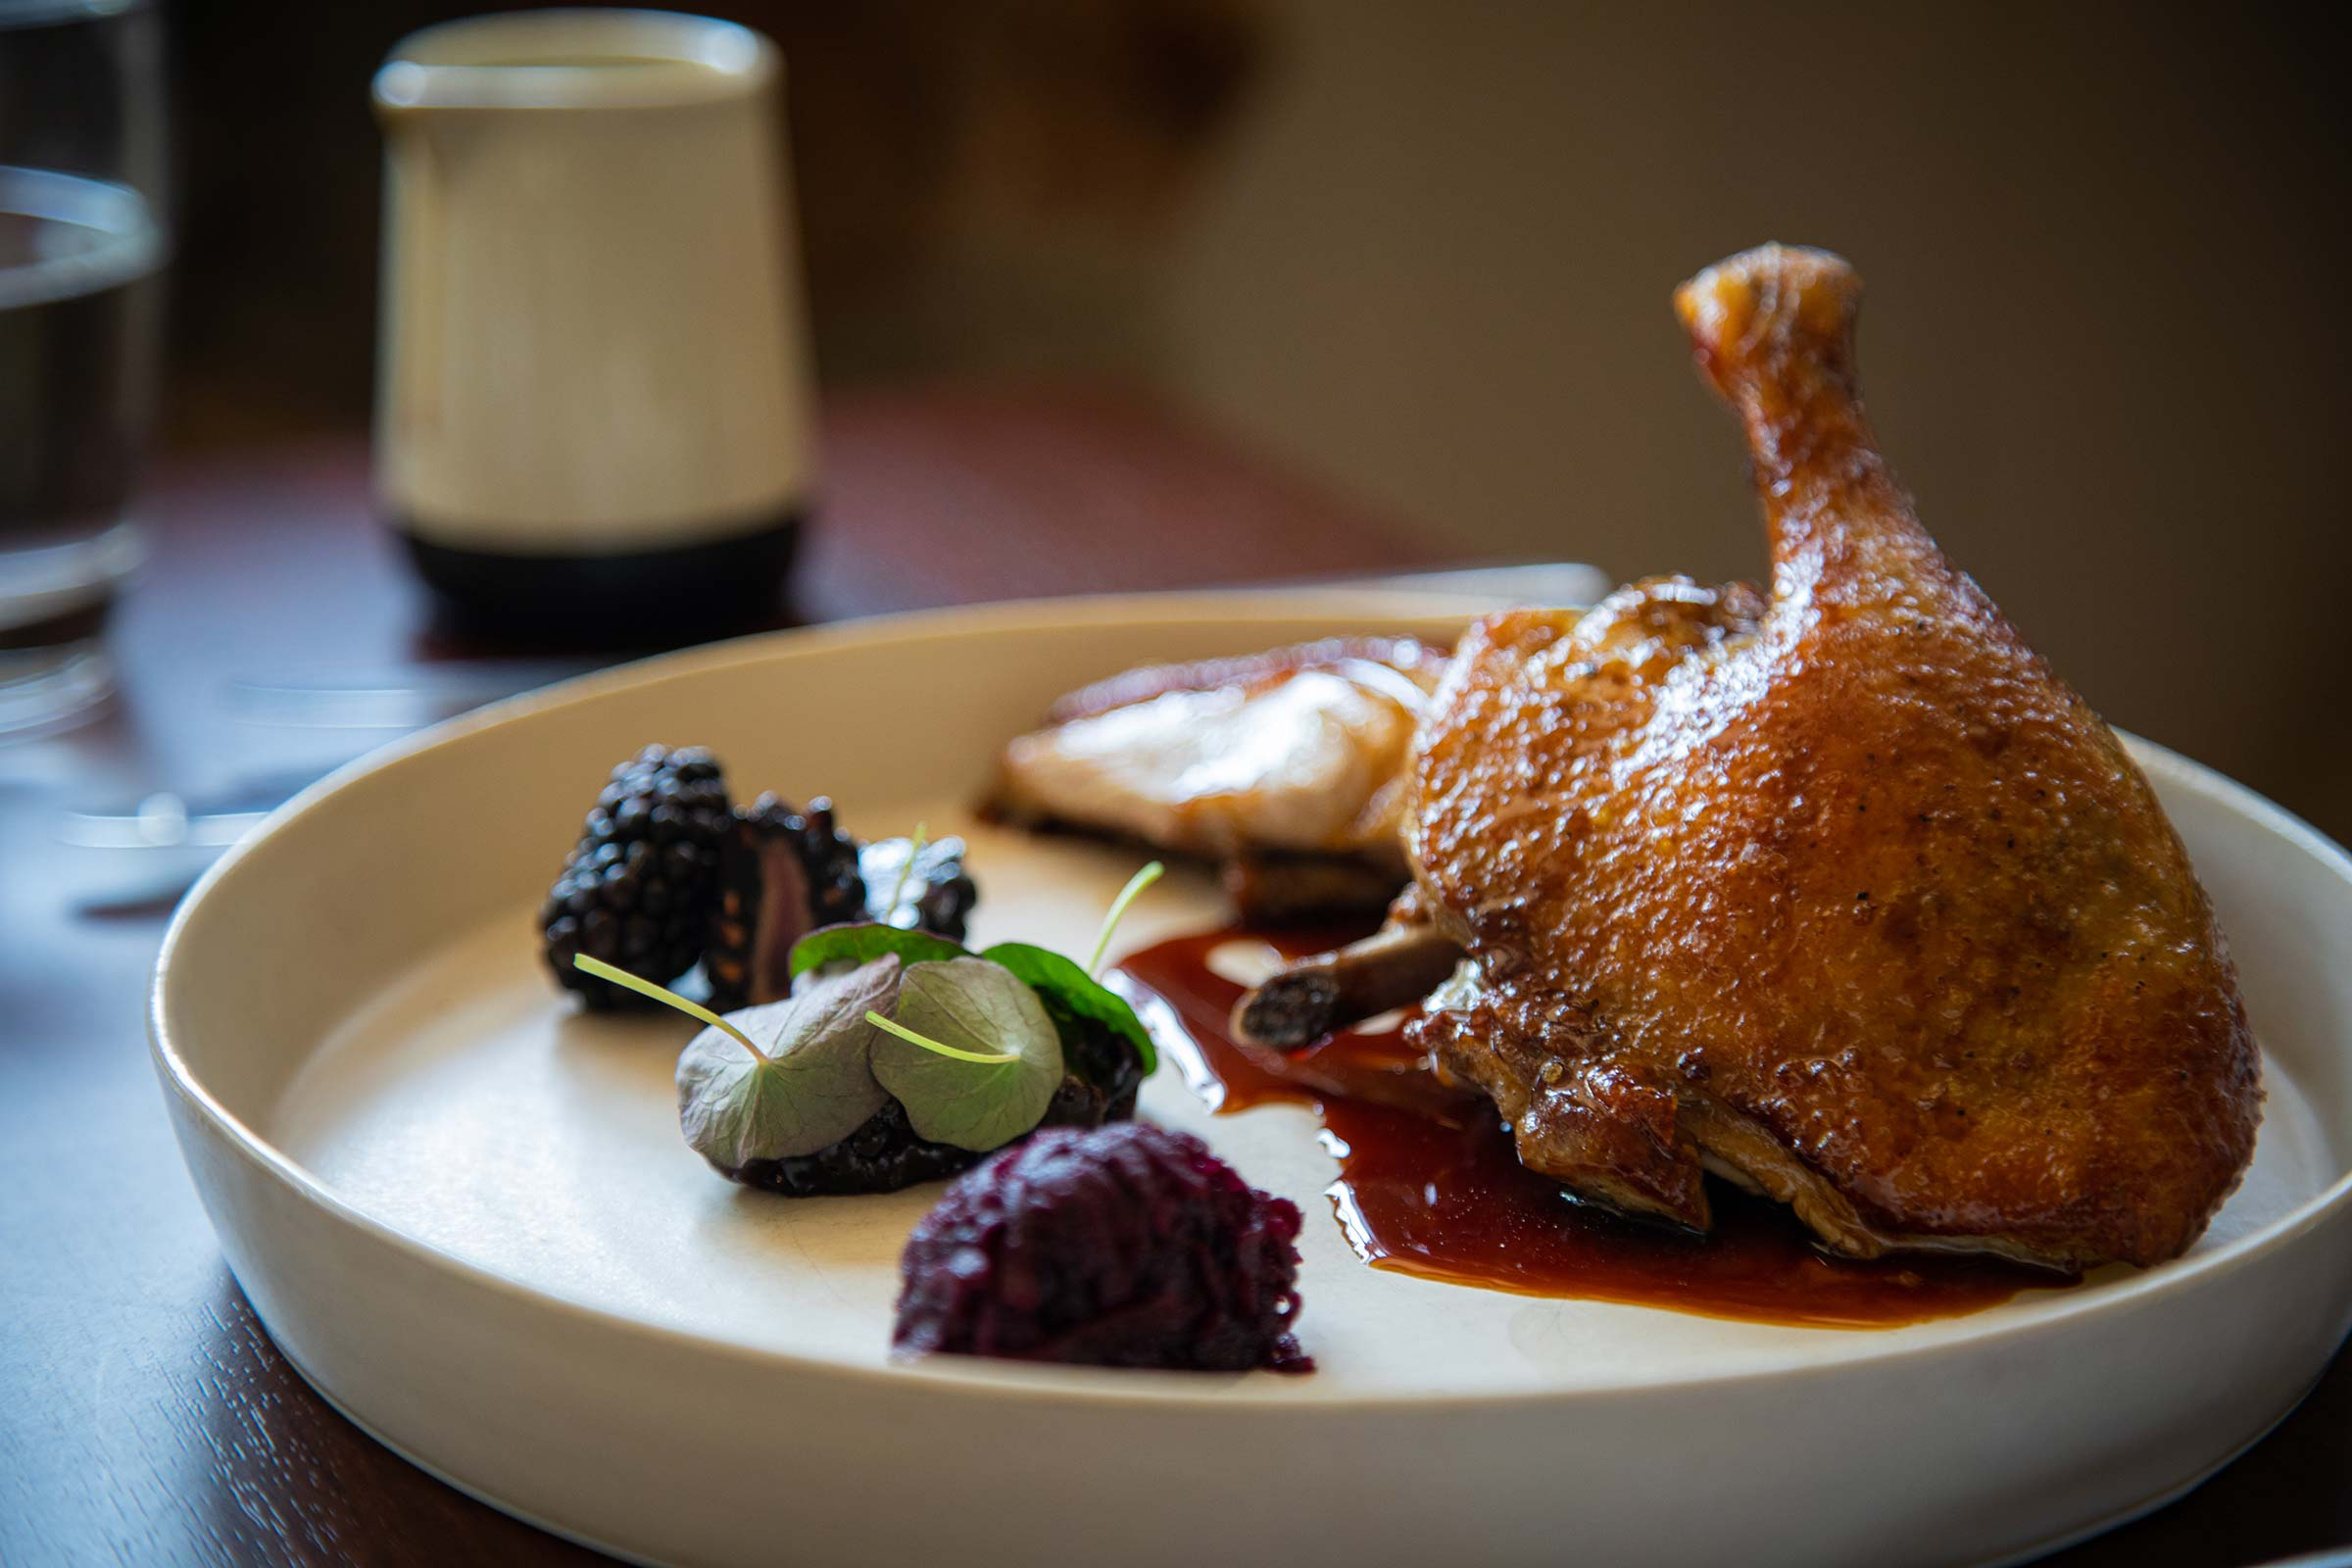 A roast chicken leg on a white plate with blackberries